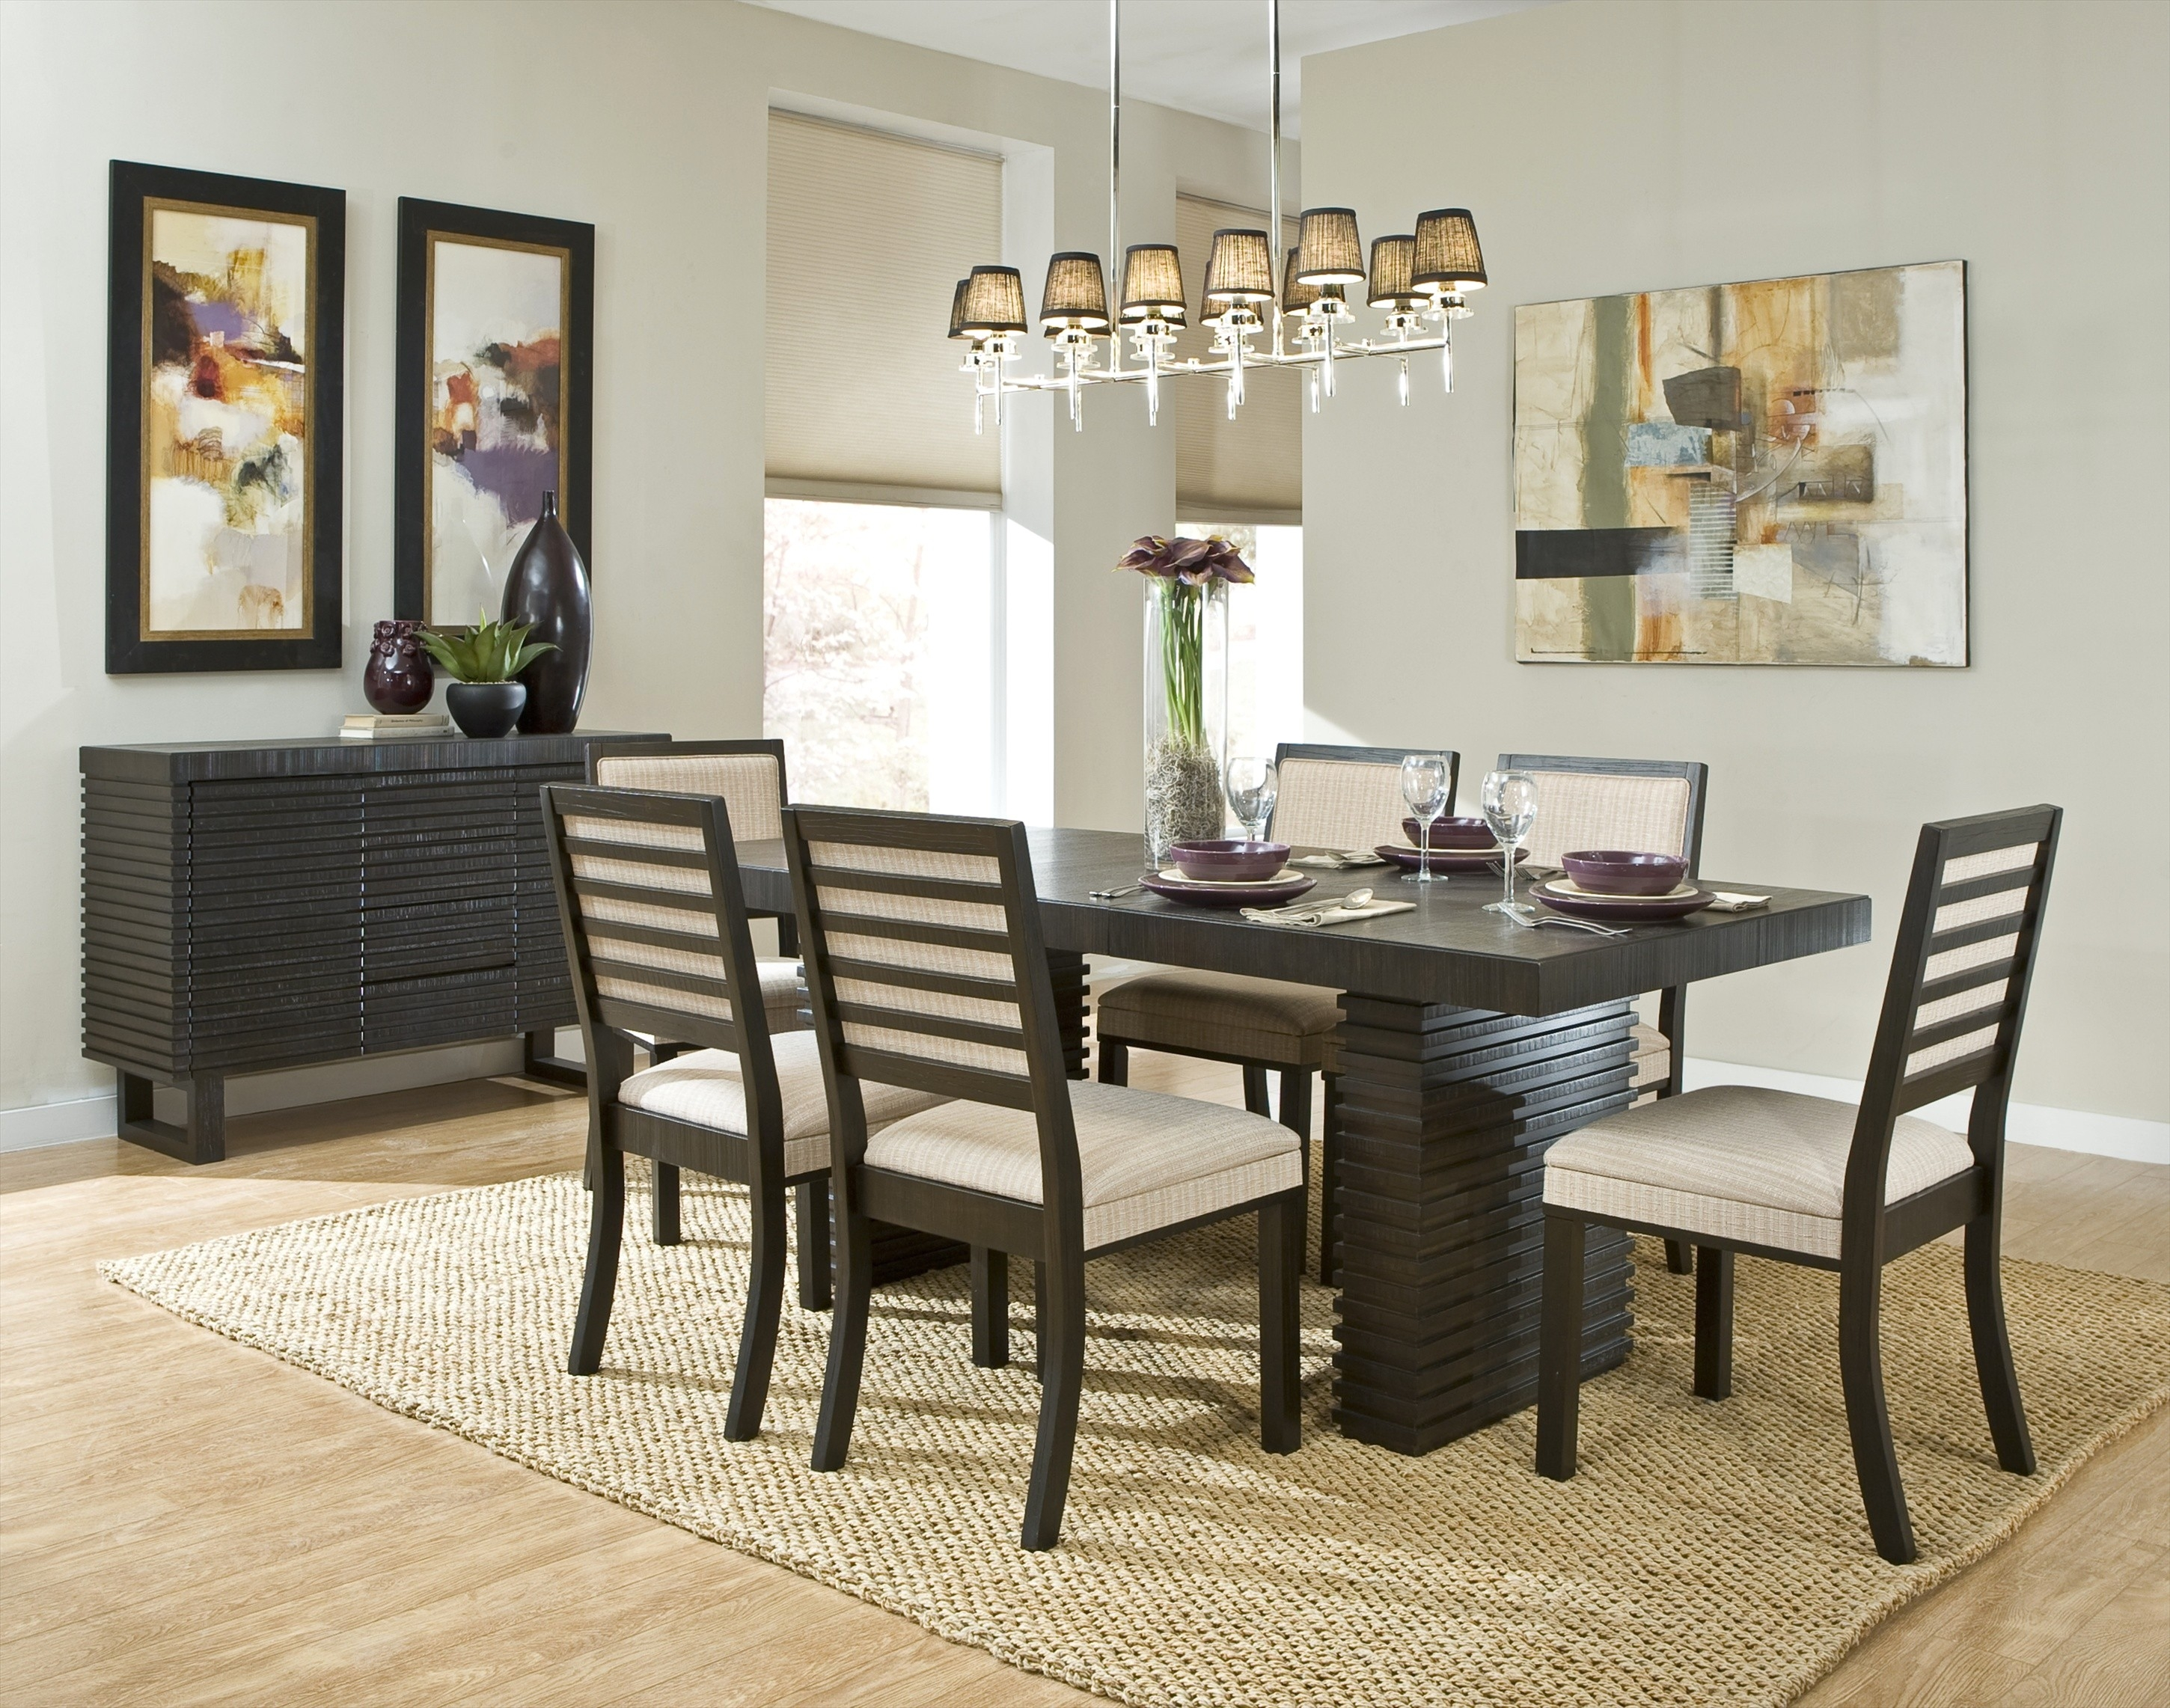 Lighting Beautiful Lowes Chandelier For Home Lighting Ideas Regarding Black Chandeliers With Shades (Image 15 of 25)